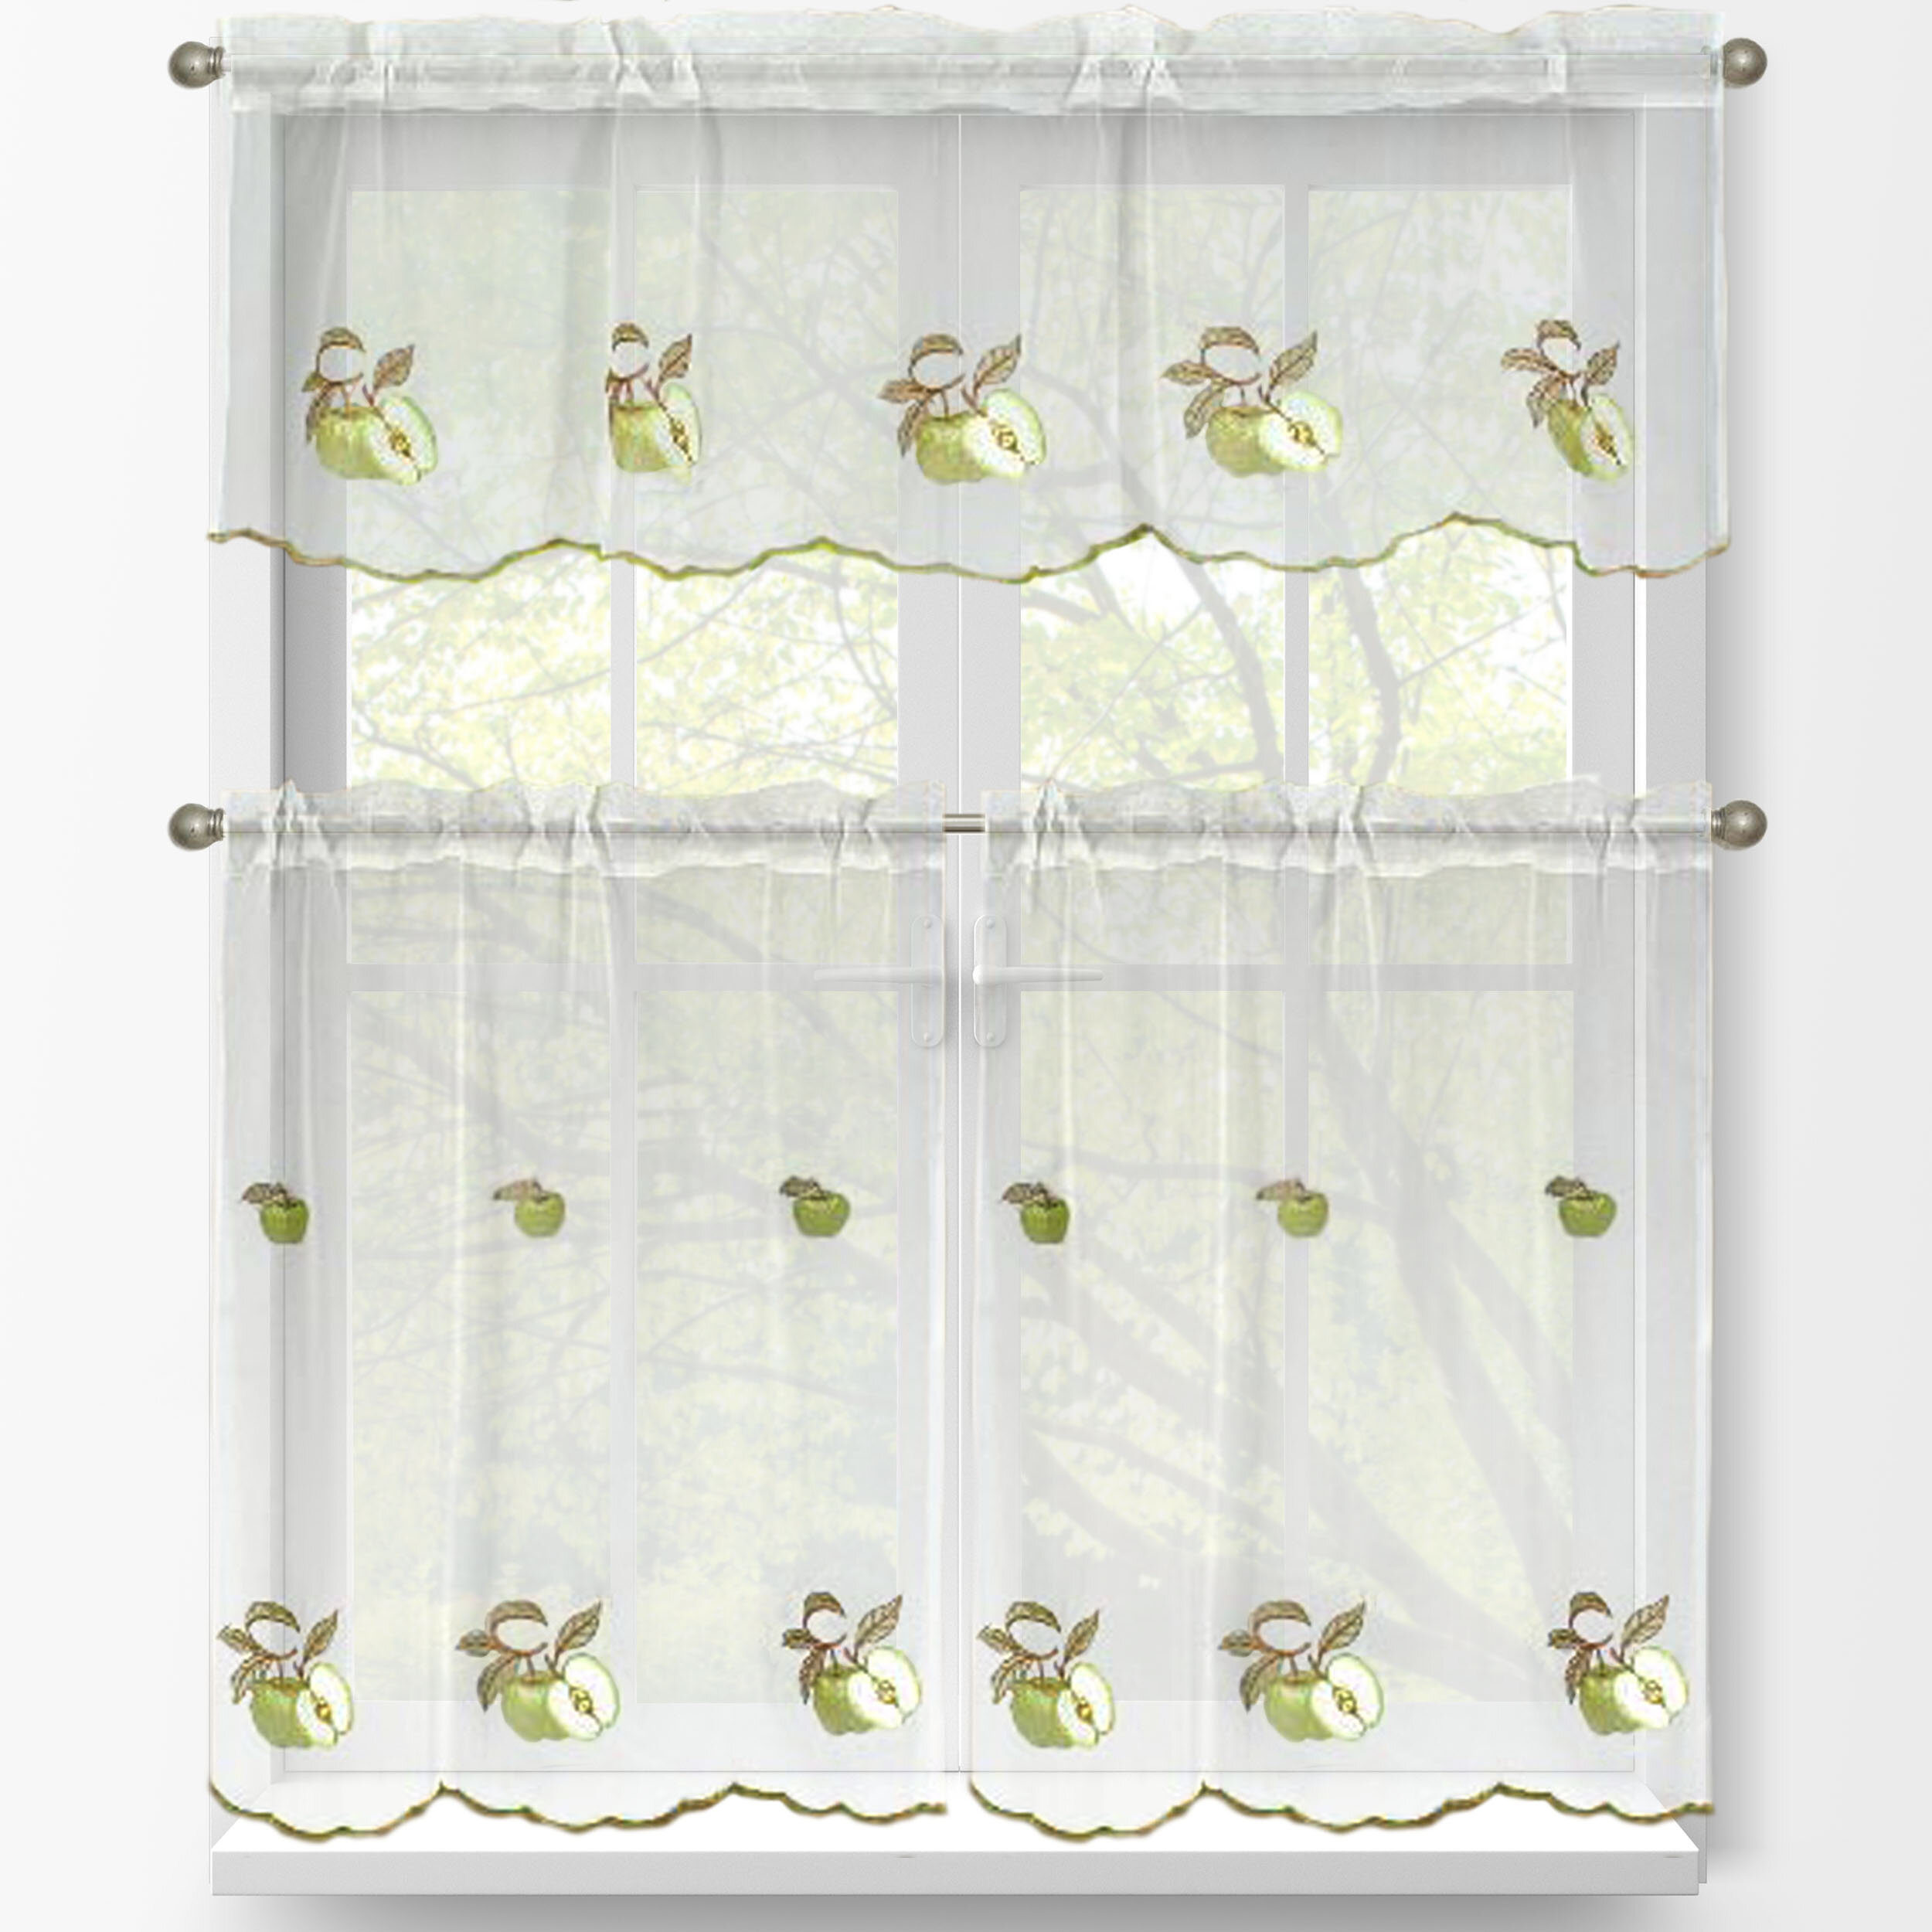 Green Apples 3 Piece Embroidered Kitchen Tier And Valance Set Inside Window Curtain Tier And Valance Sets (View 13 of 20)